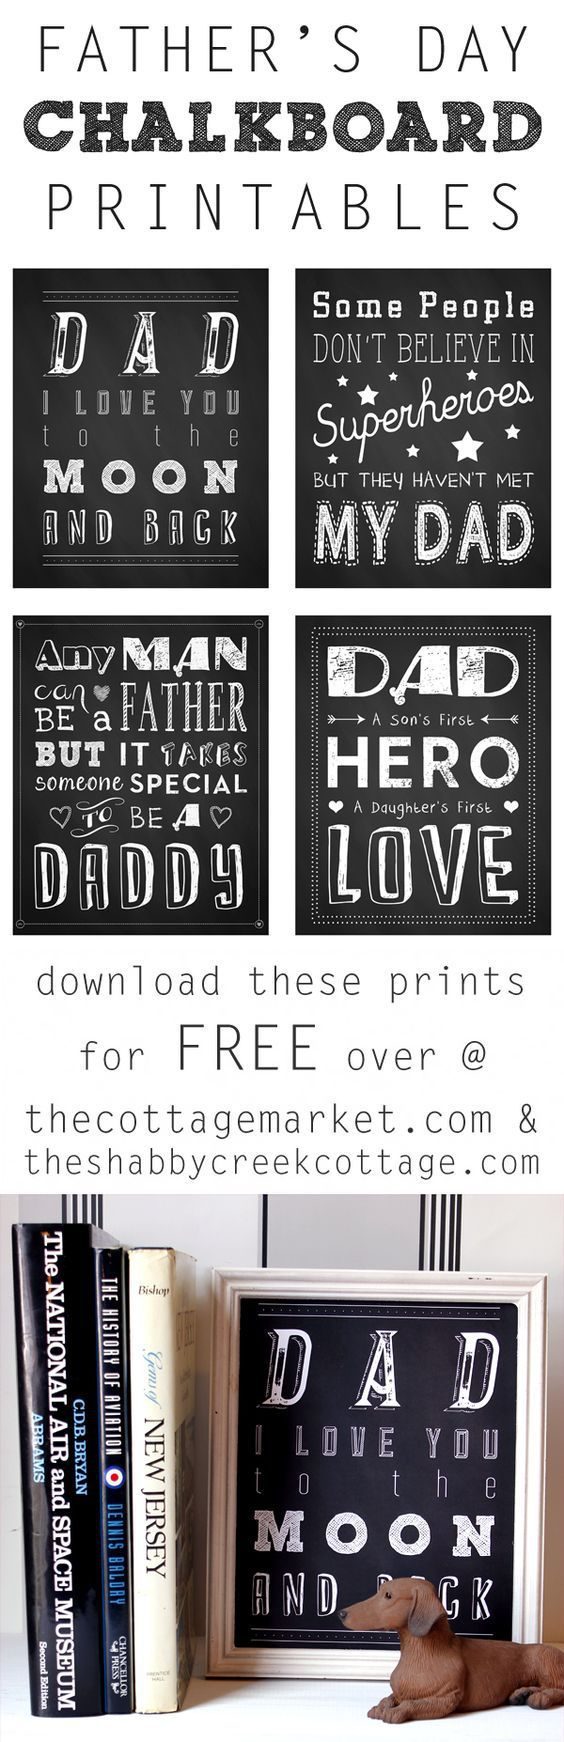 Fathers Day Gifts from Kids don't have to be boring. Thes 21Ideas will have your getting crafty and having fun making Dad something very special this year.